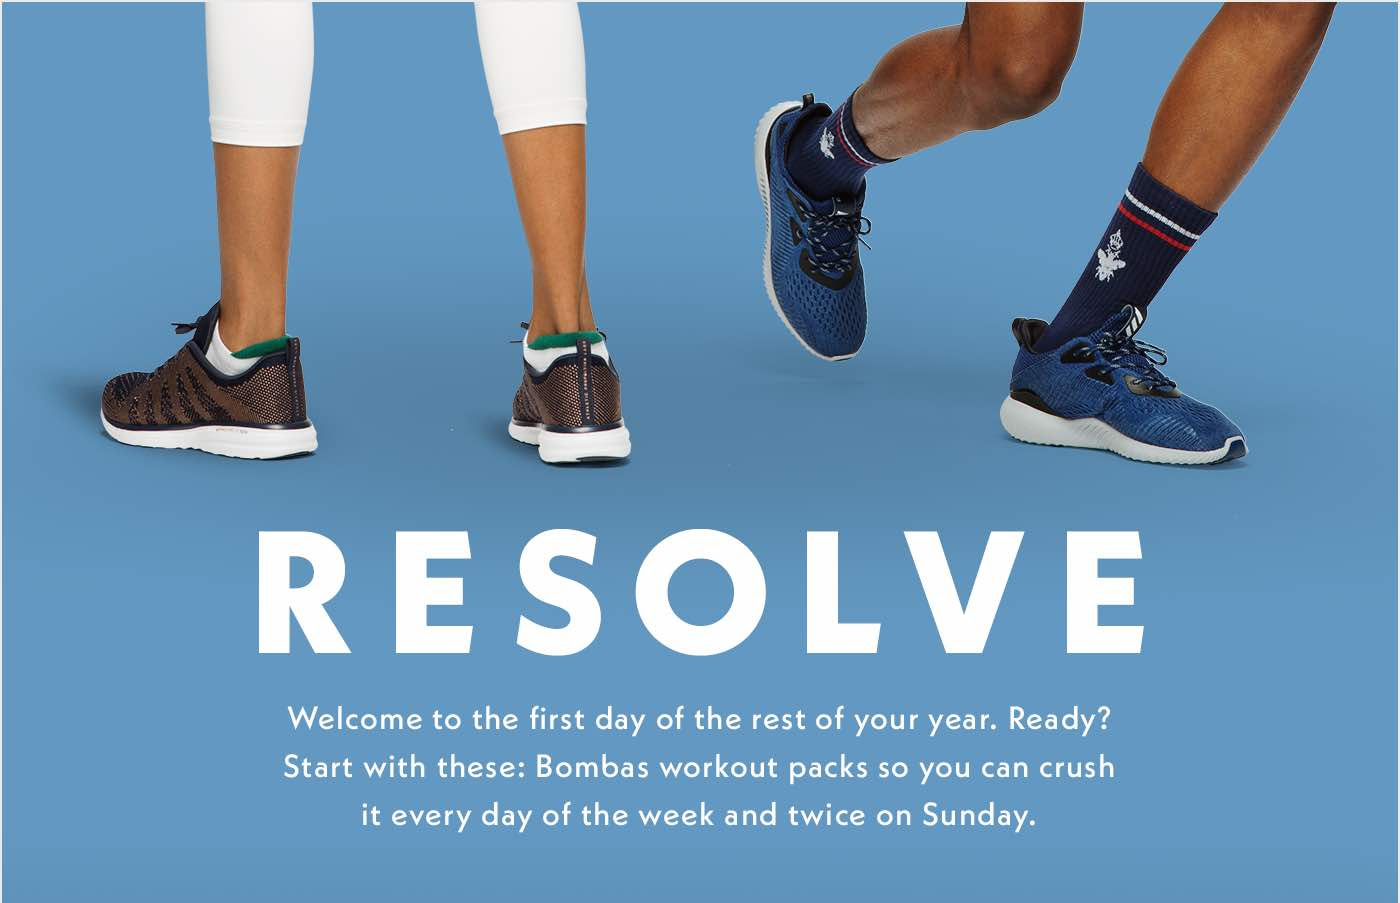 Resolve. Welcome to the first day of the rest of your year.